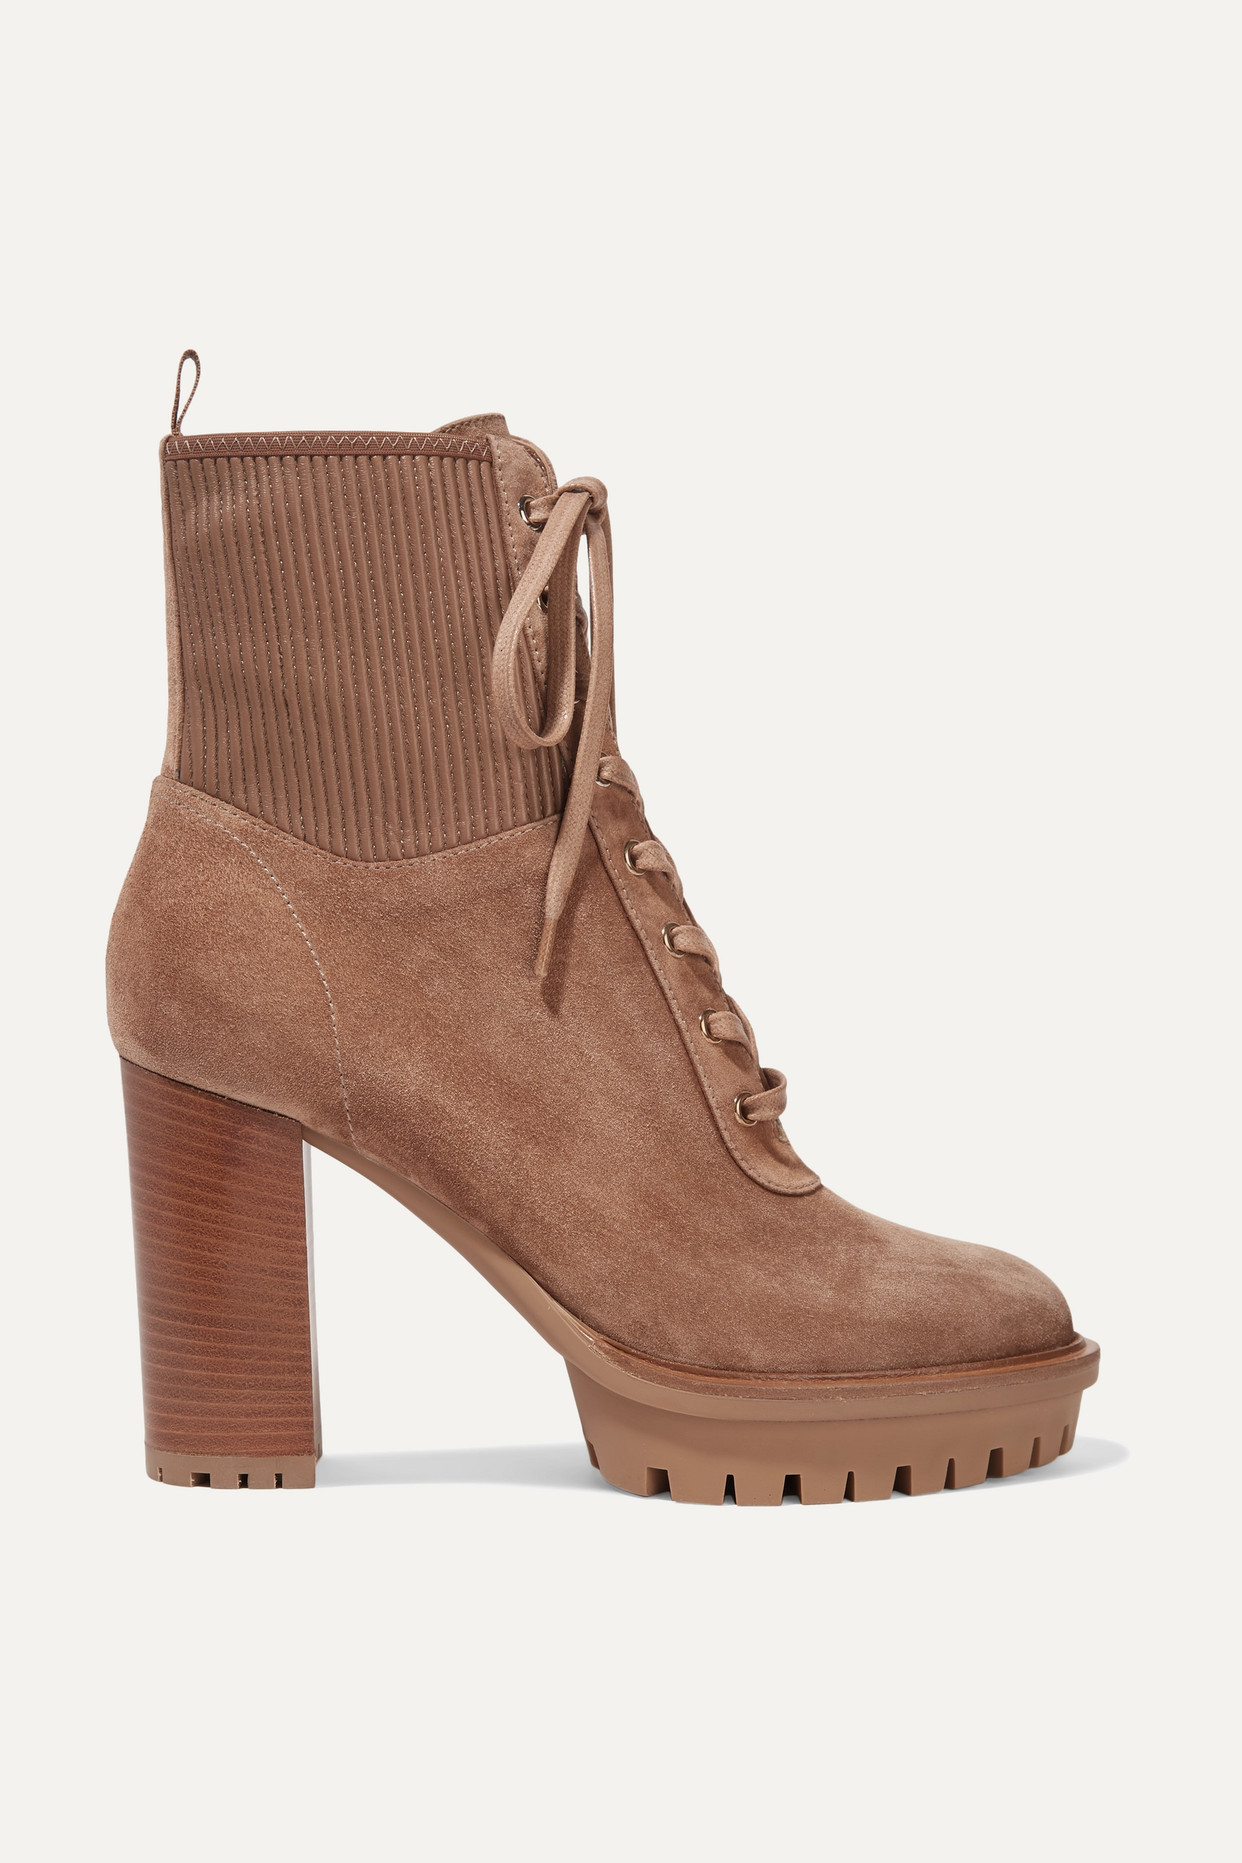 GIANVITO ROSSI - Martis 90 Lace-up Leather-trimmed Suede Ankle Boots - Brown - IT35